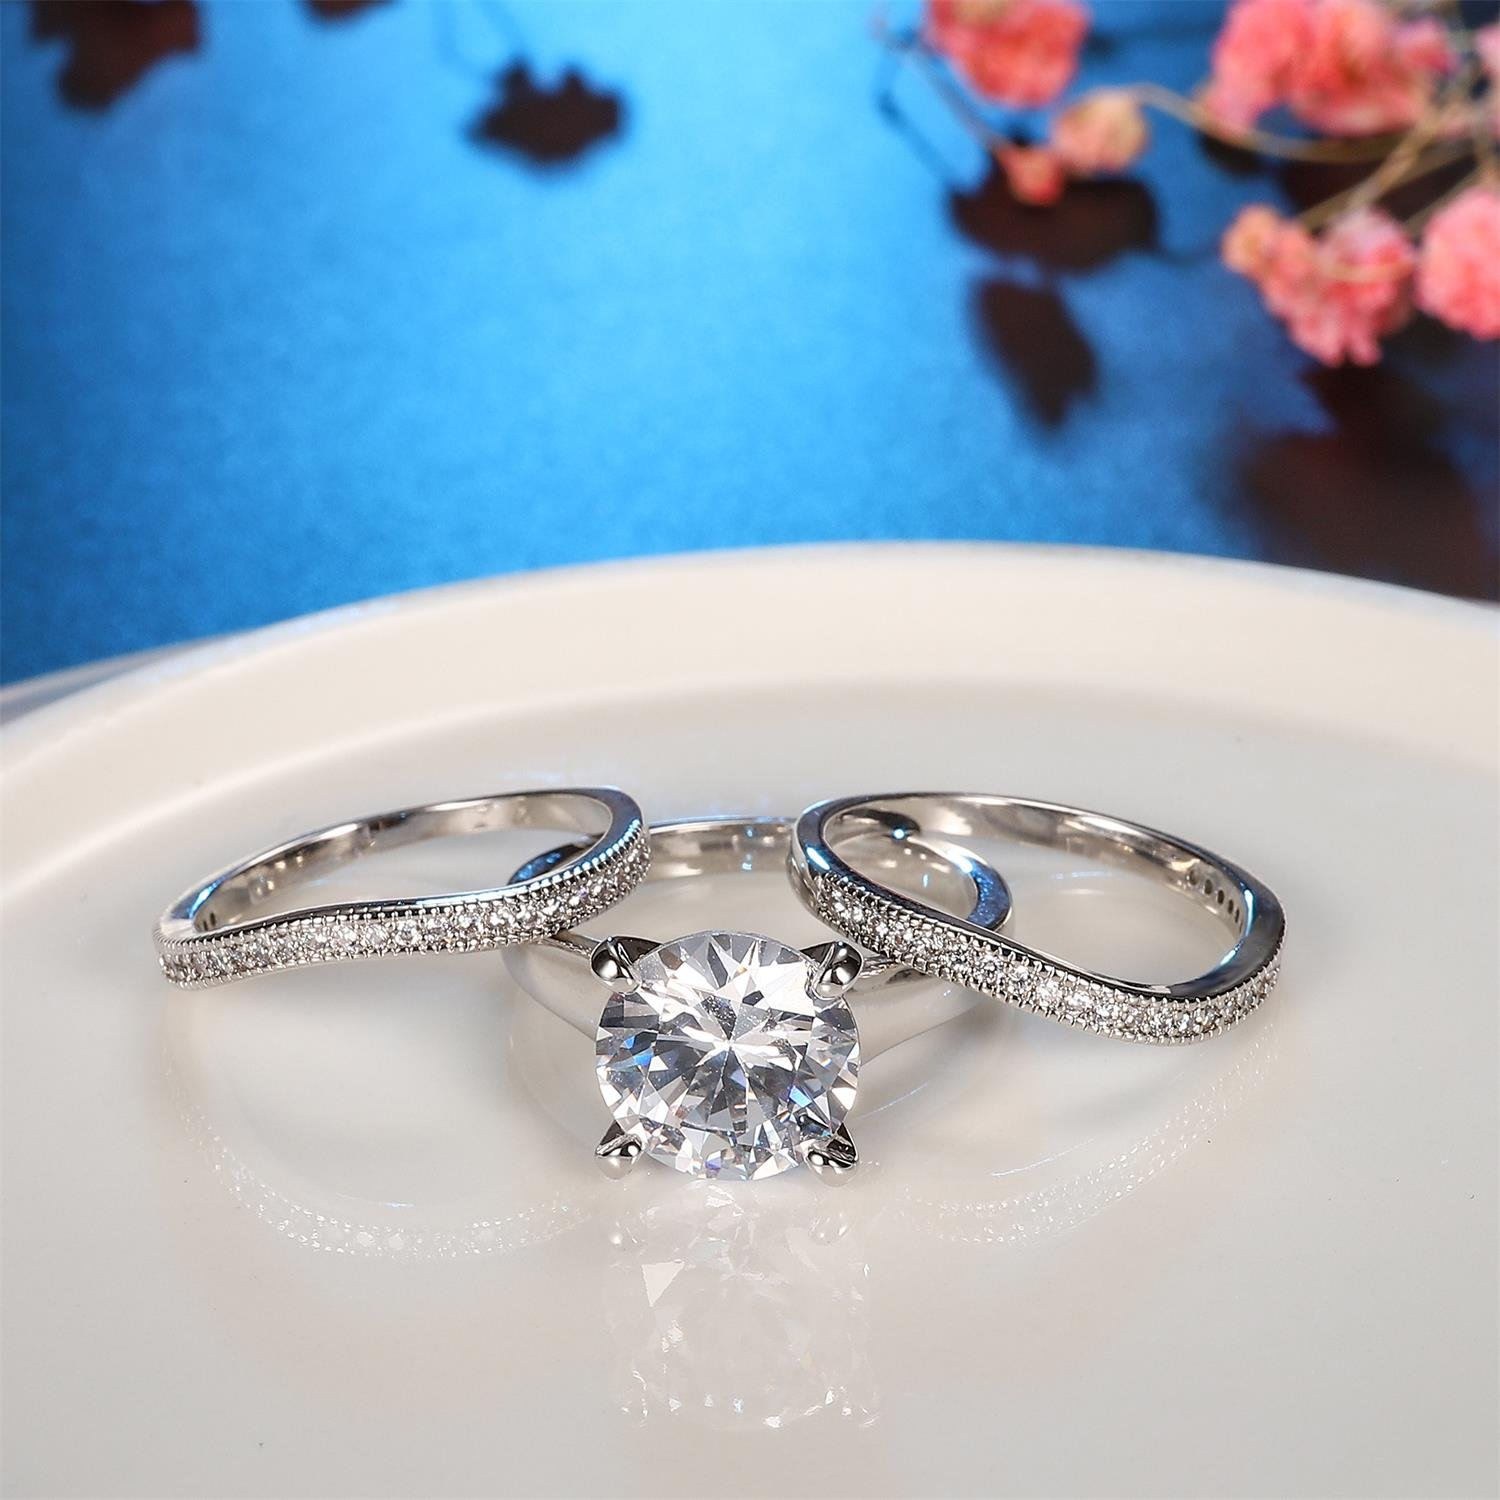 Platinum Plated Bridal Set - Round Cut Cubic Zirconia Rings Women Engagement Ring Set with Wedding Band by Hiyong (Image #6)